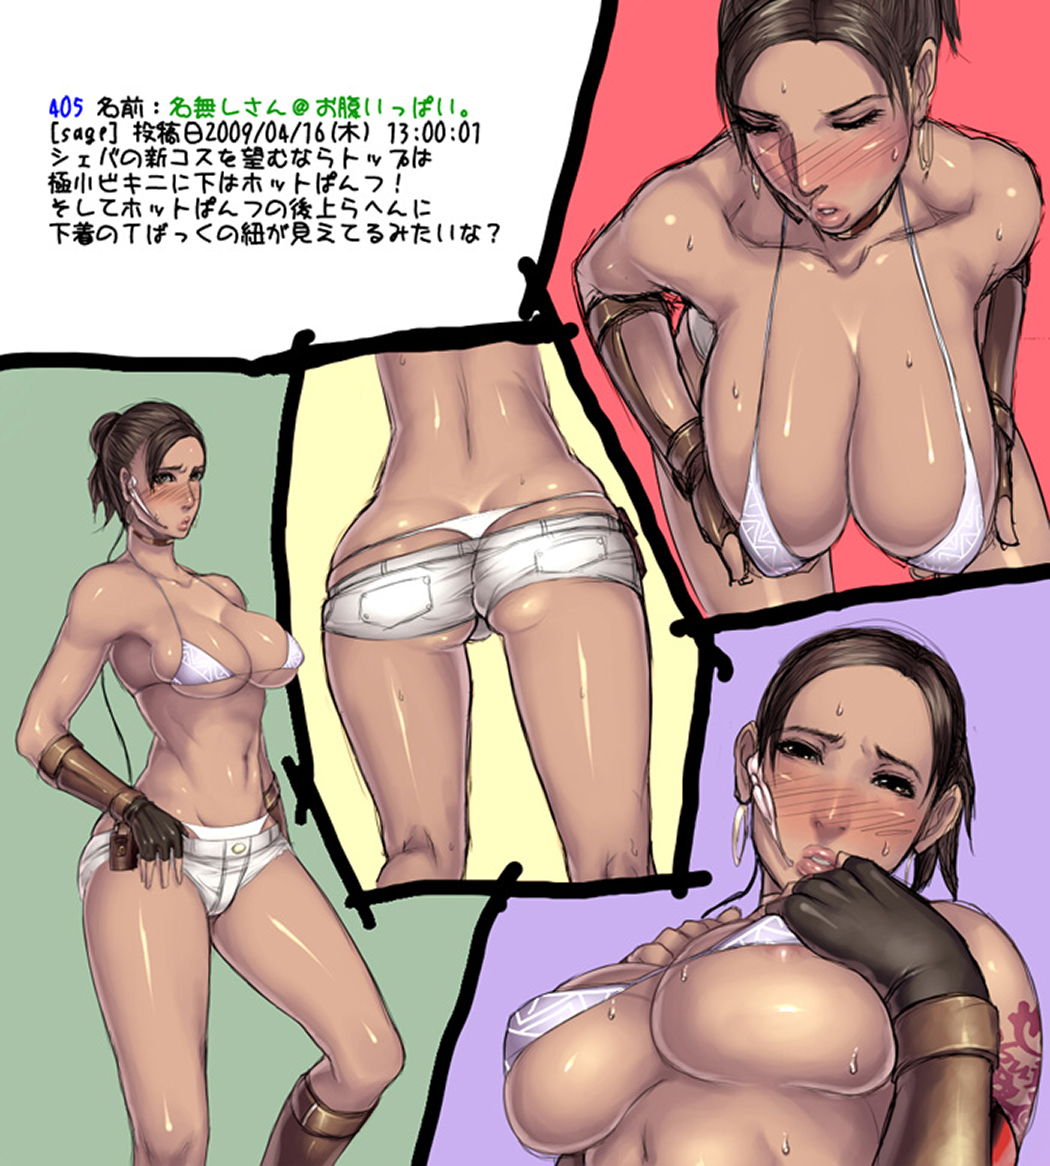 Resident evil 5 cartoon sex free porn pic